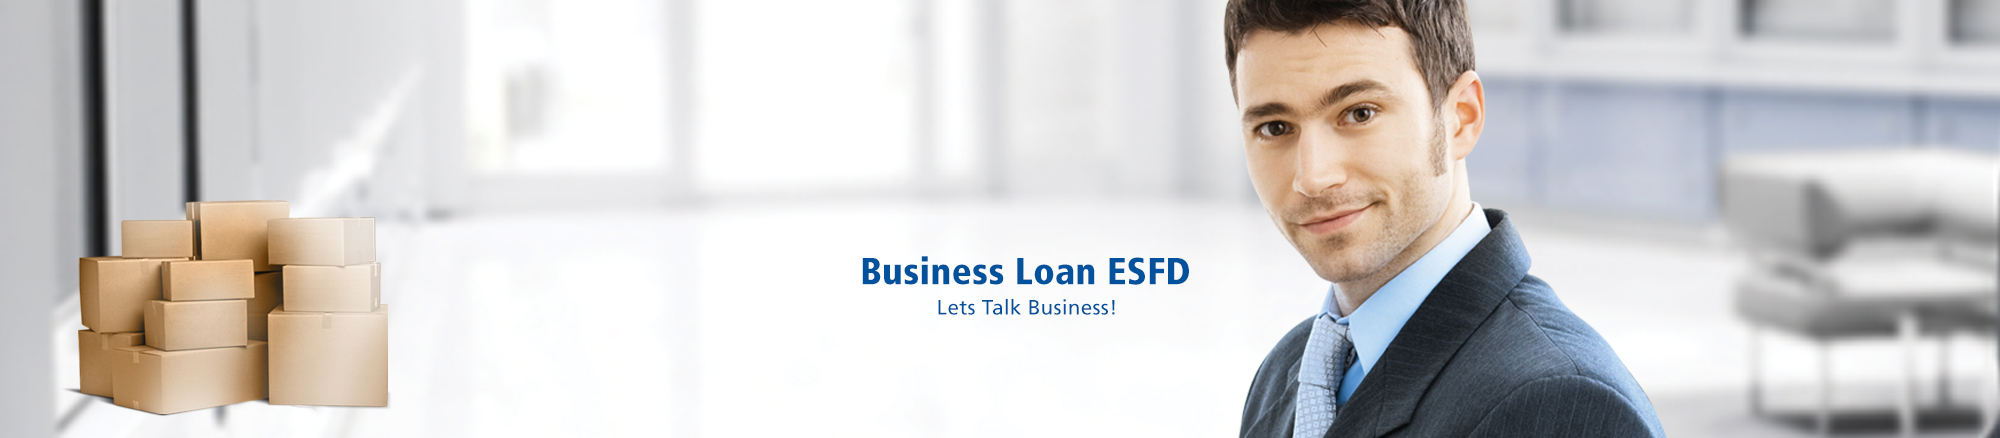 Business Loan with ESFD